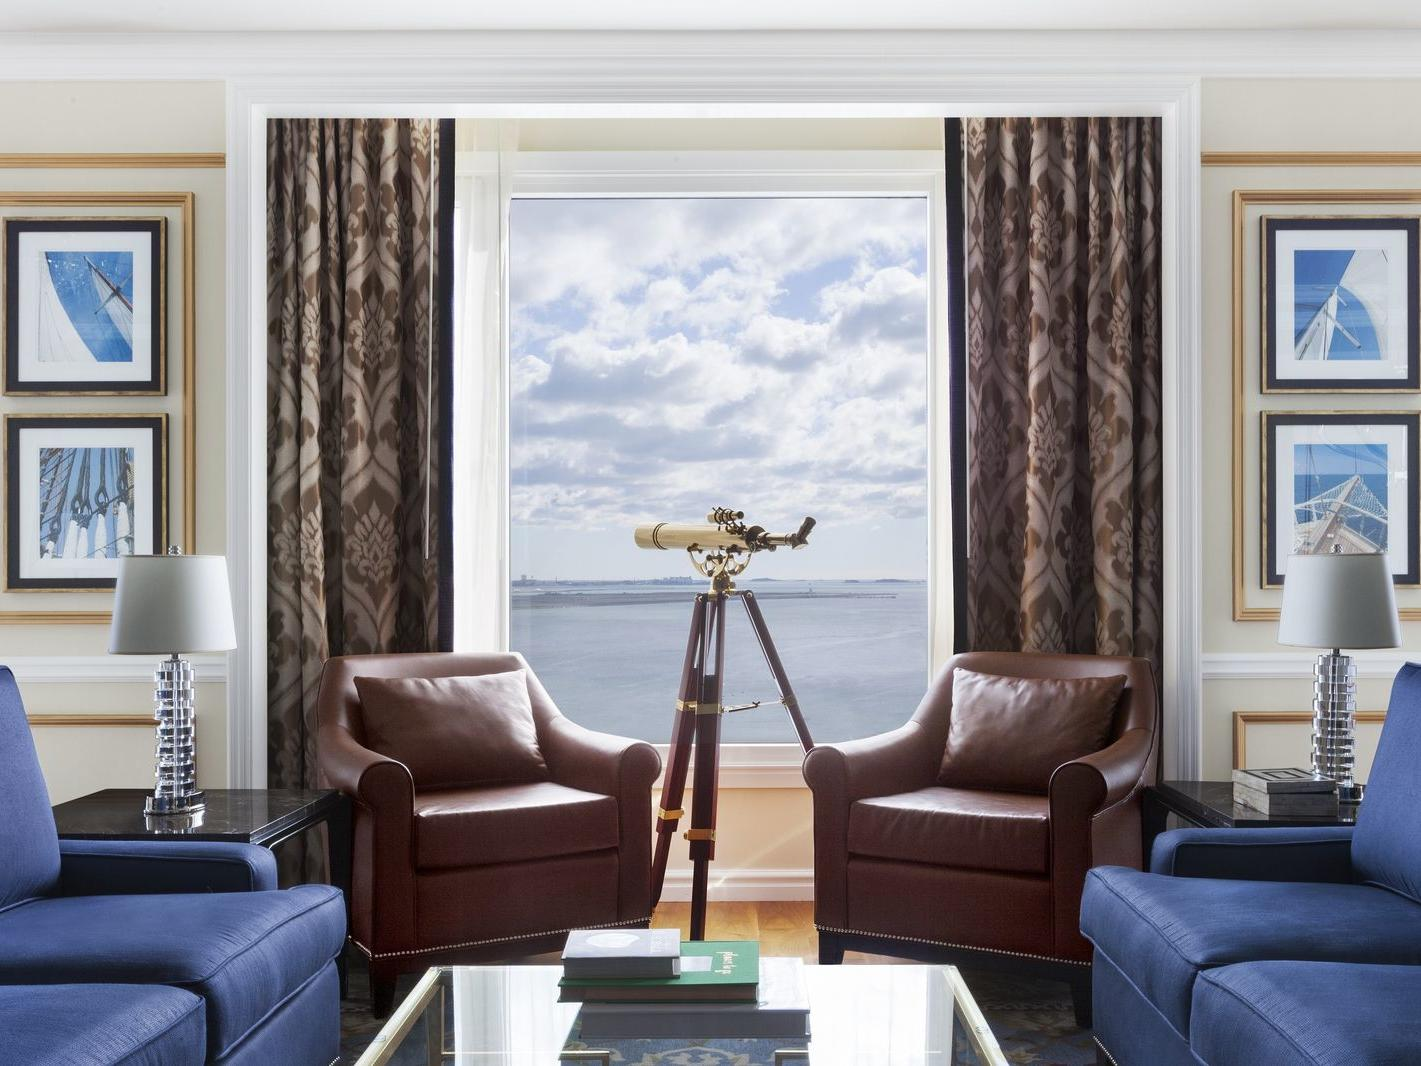 Suite living room with telescope by window with harbor view